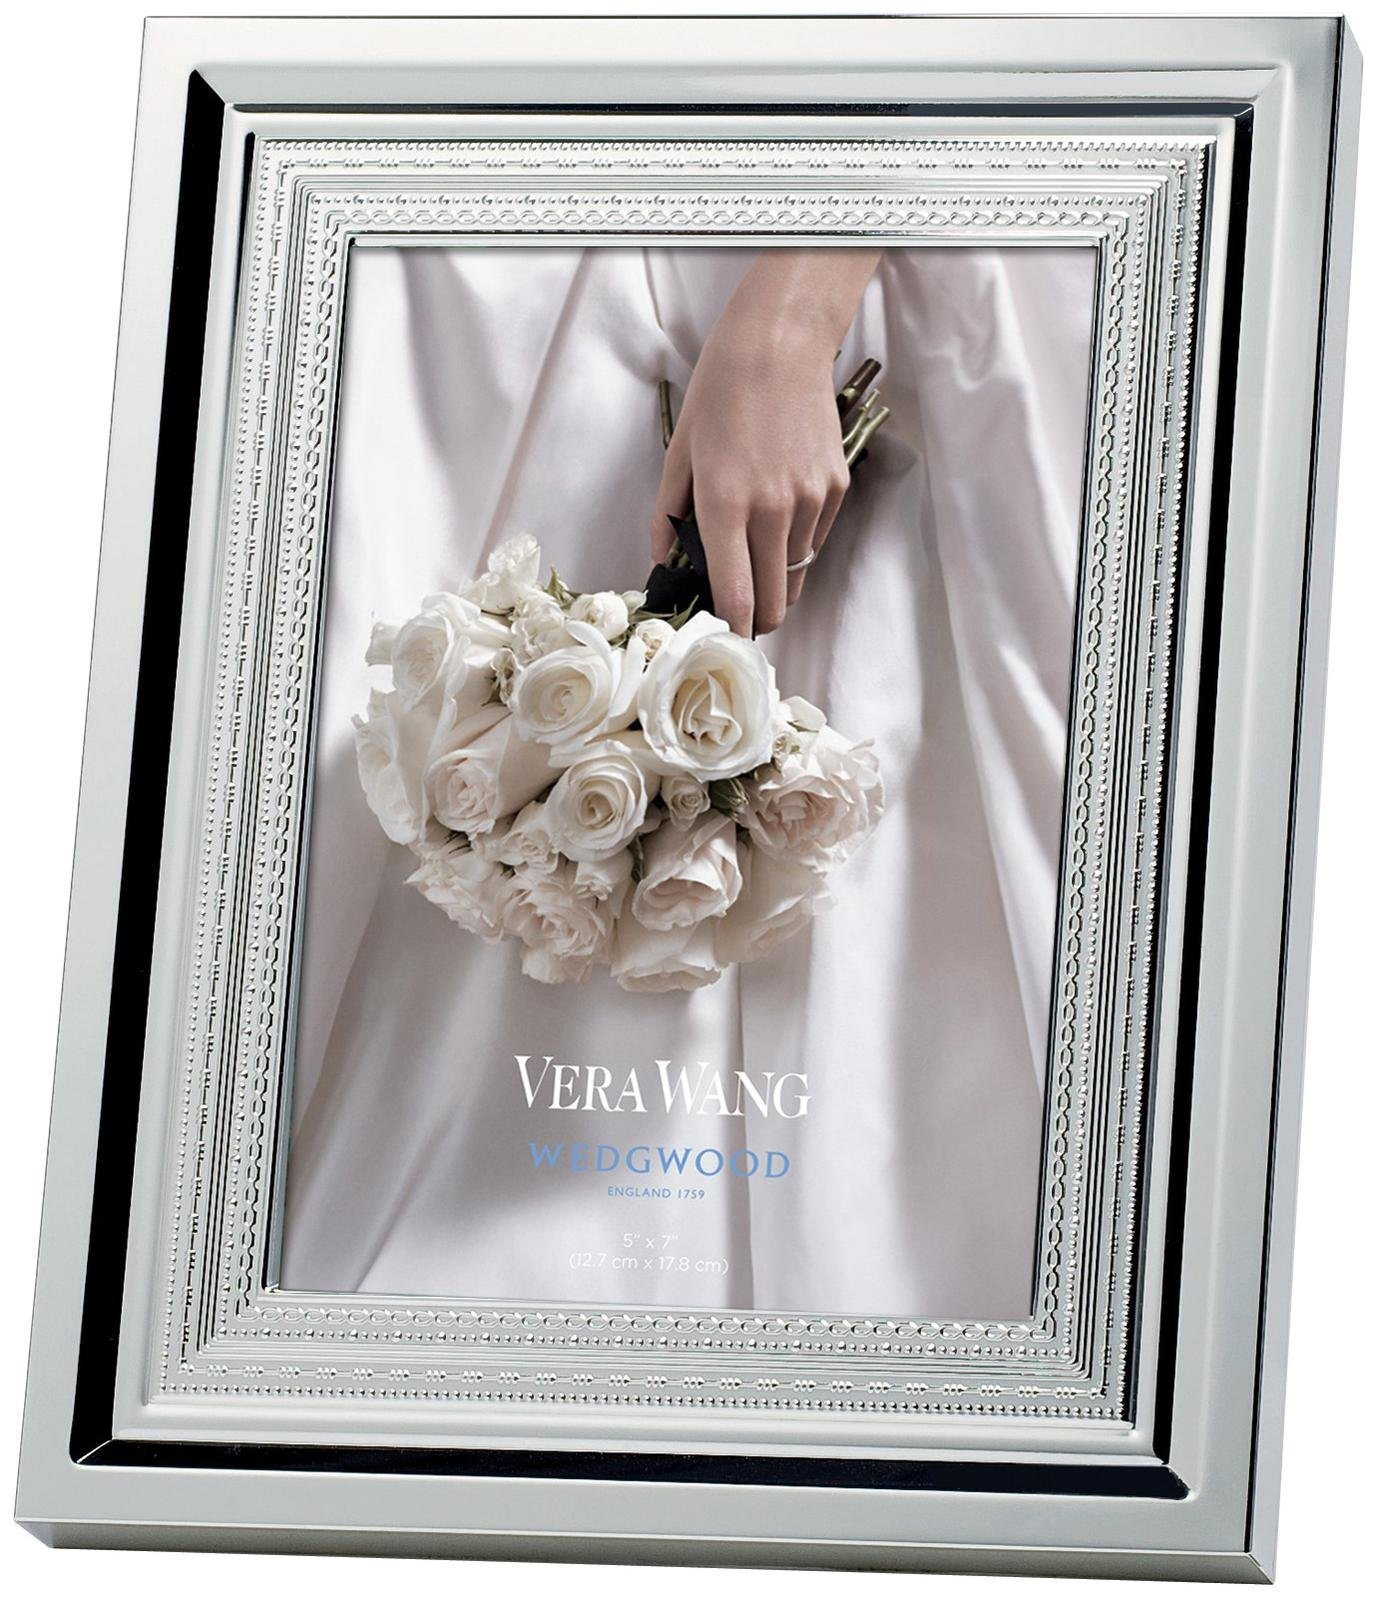 Wedgwood with Love Frame - 5'' x 7''